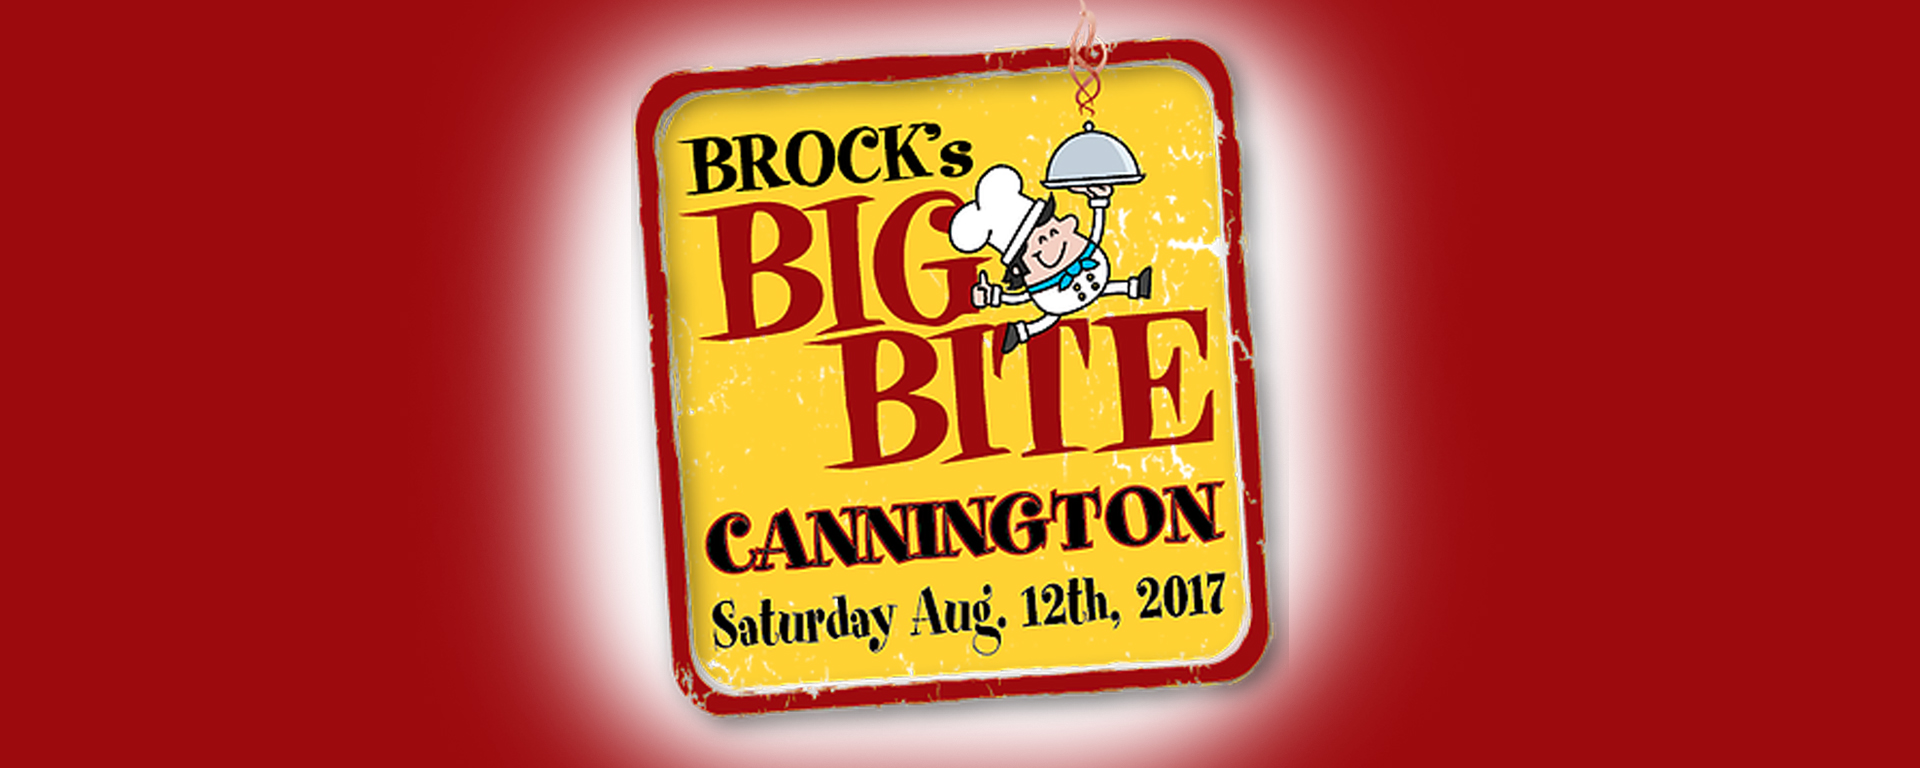 Brock's Big Bite is coming to Cannington